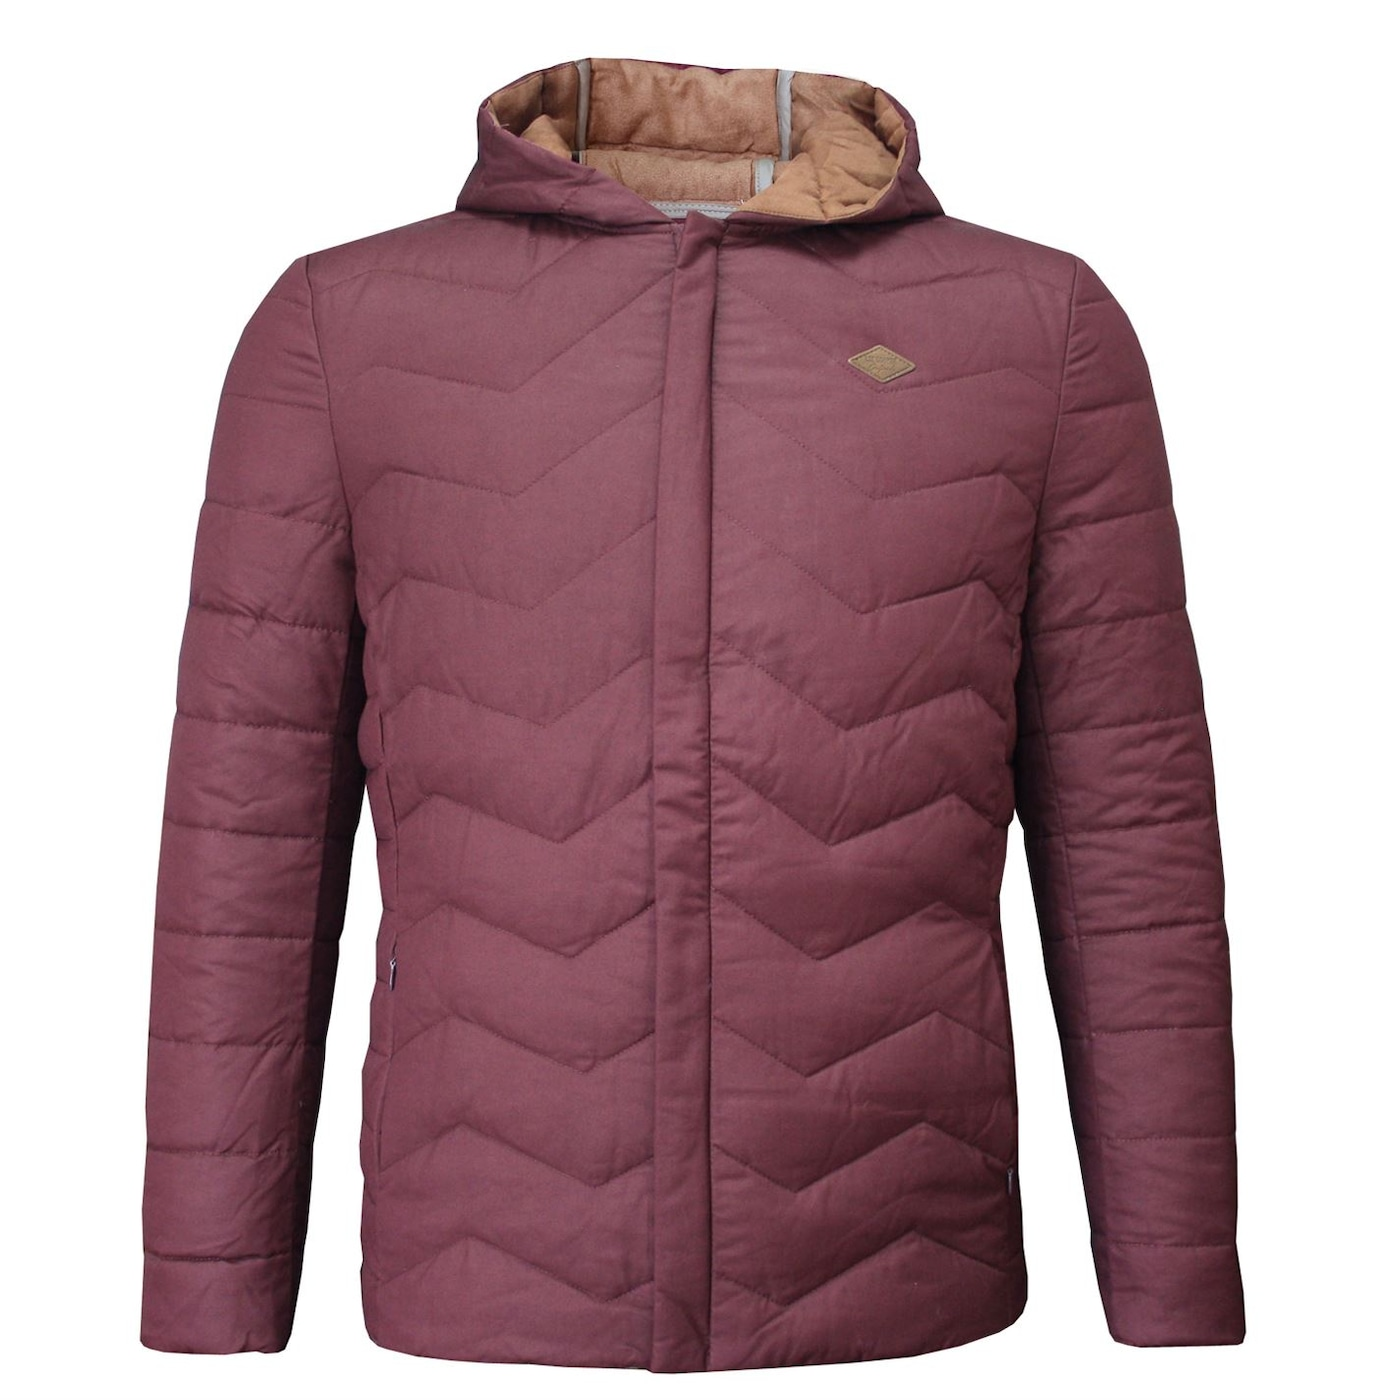 1f9f3b05e2ed Lee Cooper Quilted Down Jacket pánské